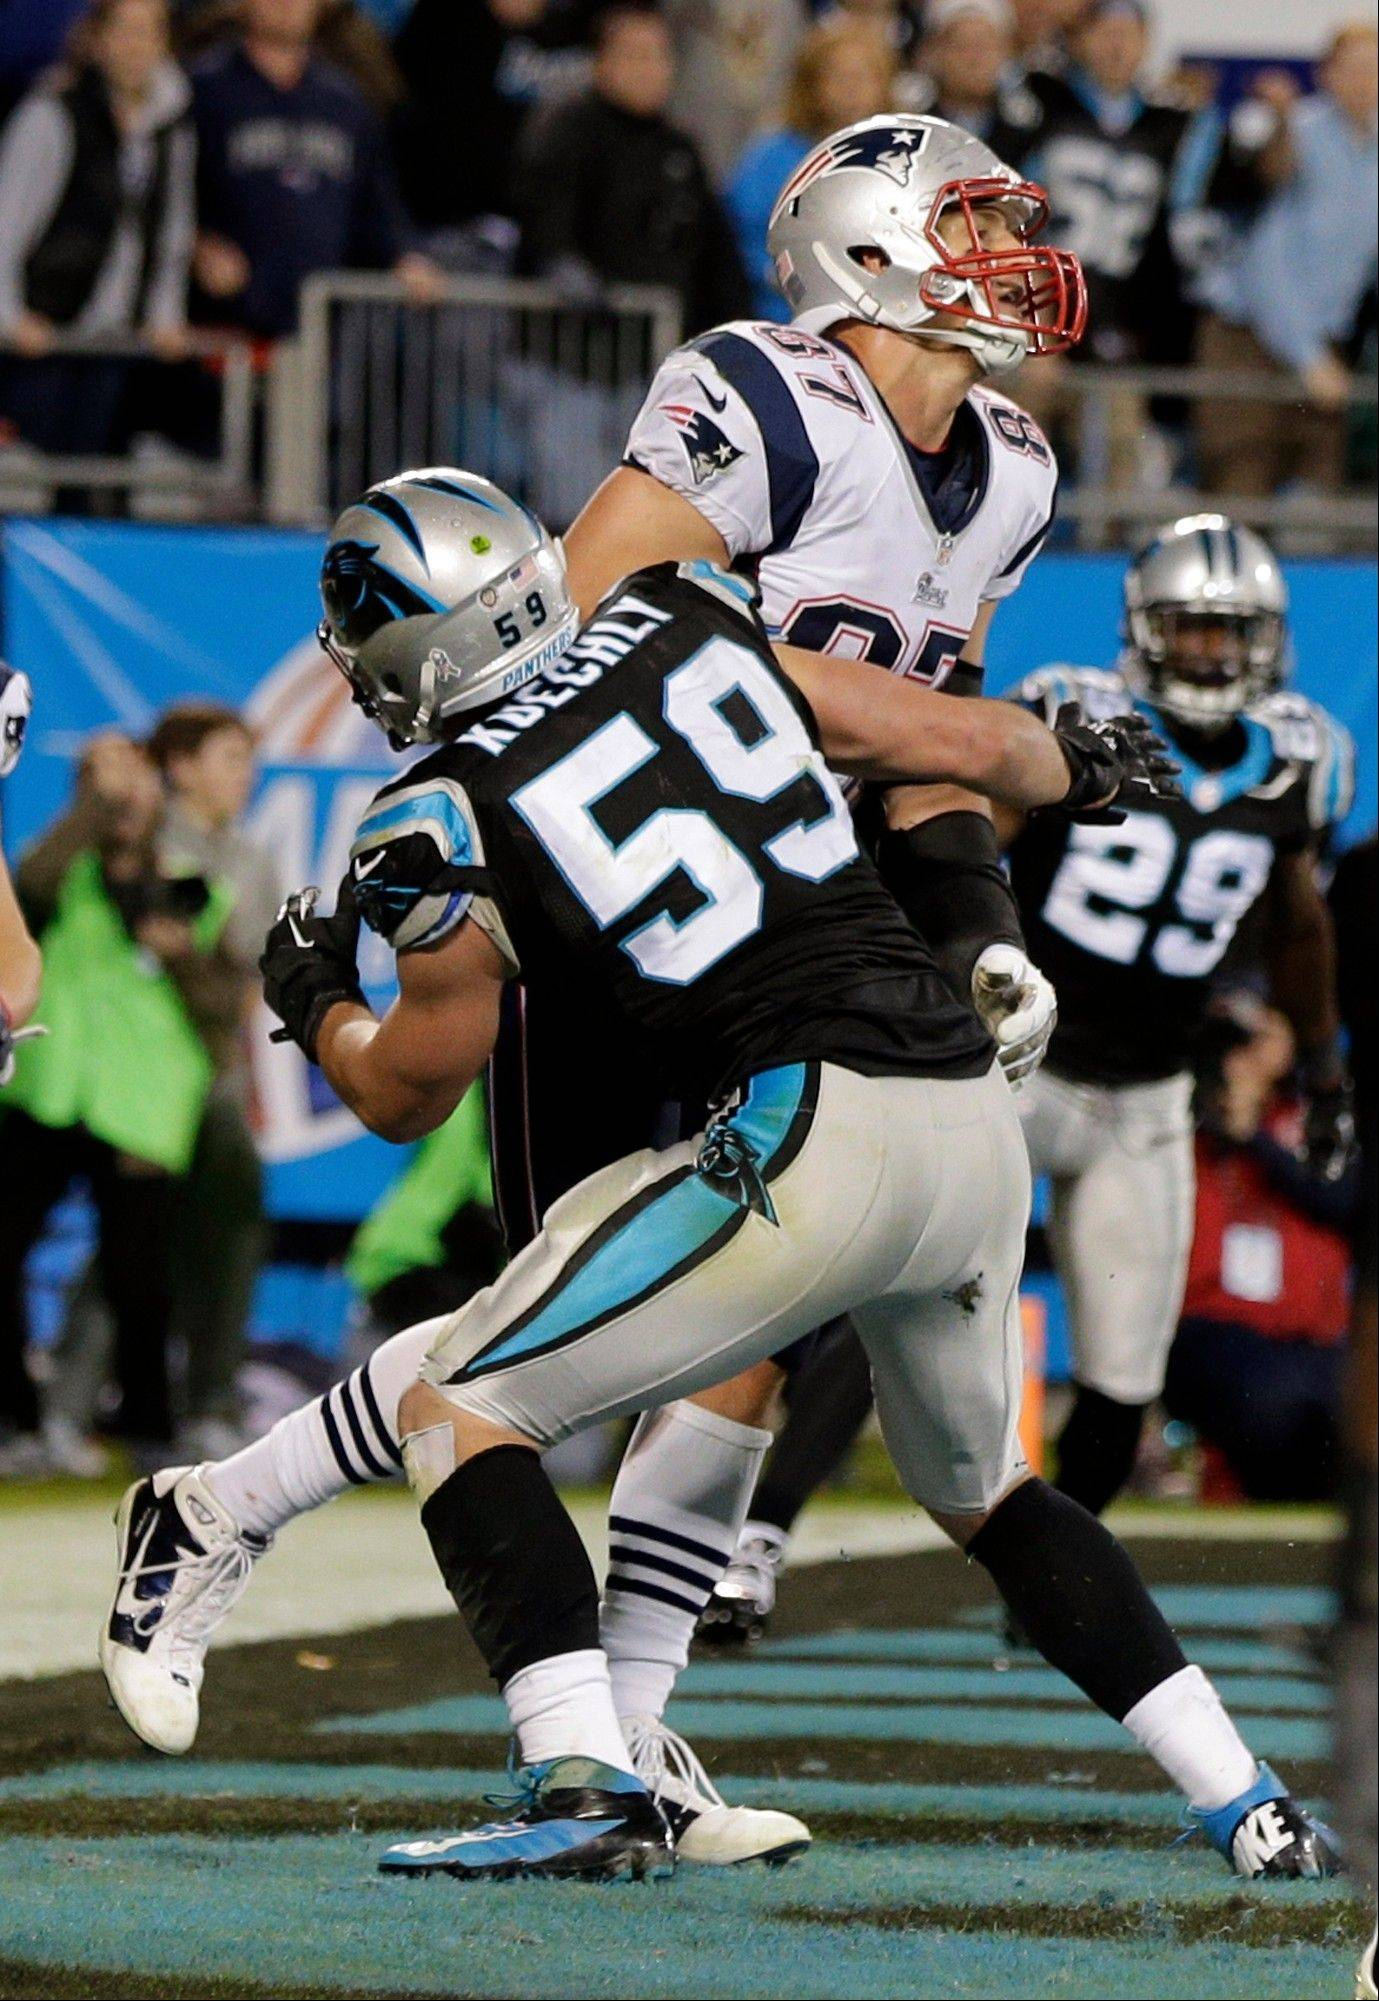 The Panthers' Luke Kuechly blocks the Patriots' Rob Gronkowski on the final play of the game Monday in Charlotte, N.C. A flag was thrown, but officials later decided no penalty had occurred.